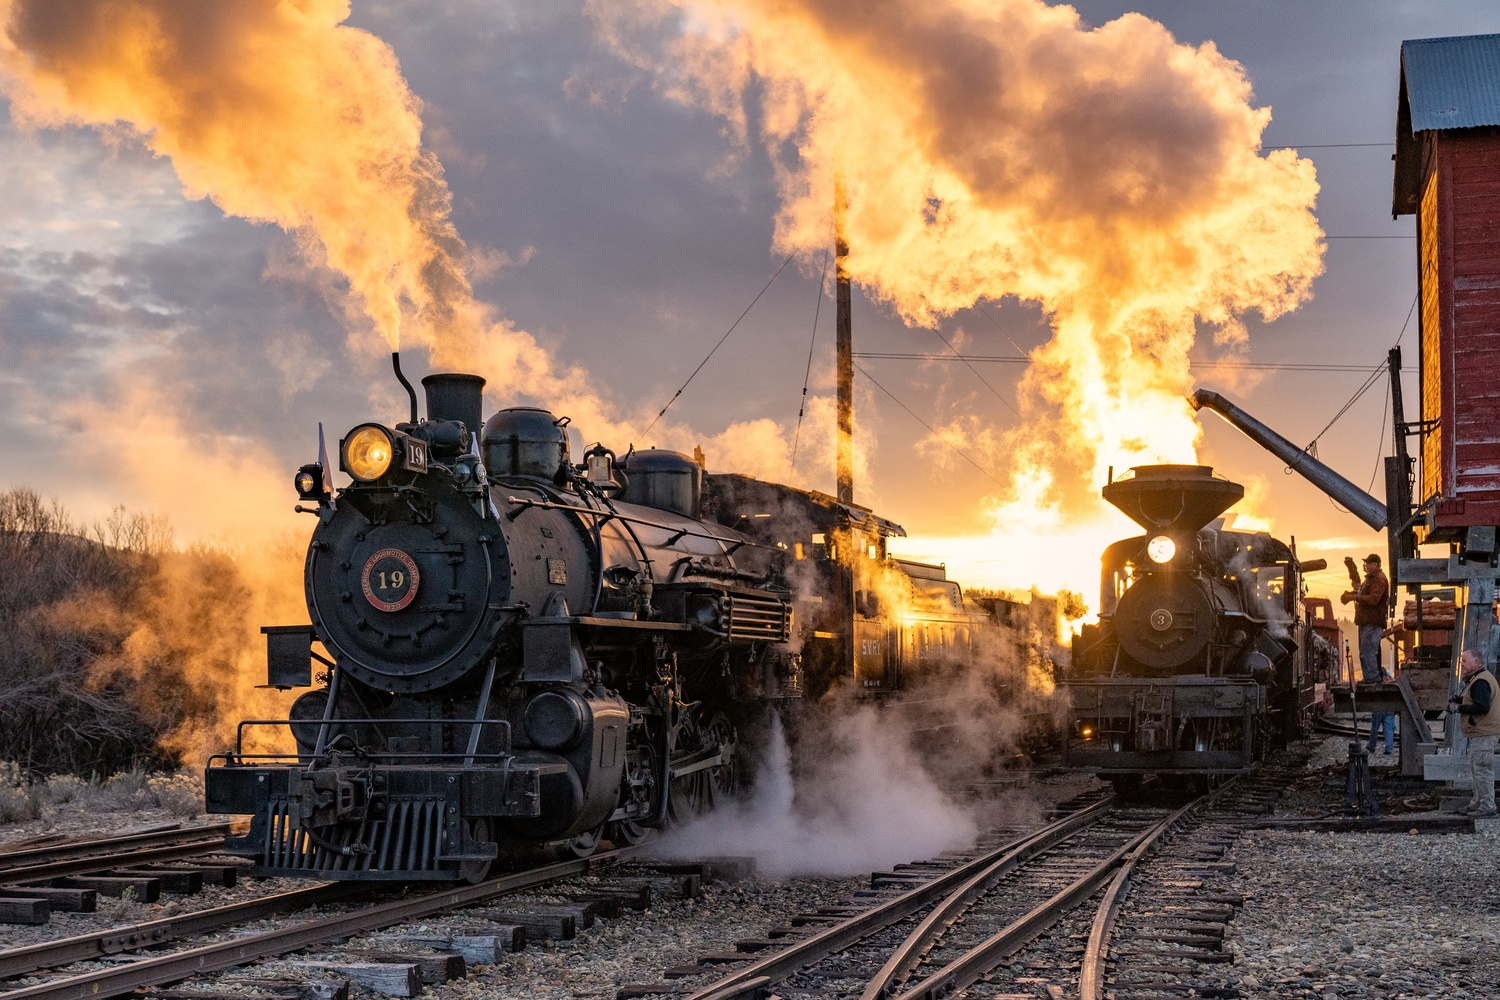 the ol' union pacific by Wasim Muklashy